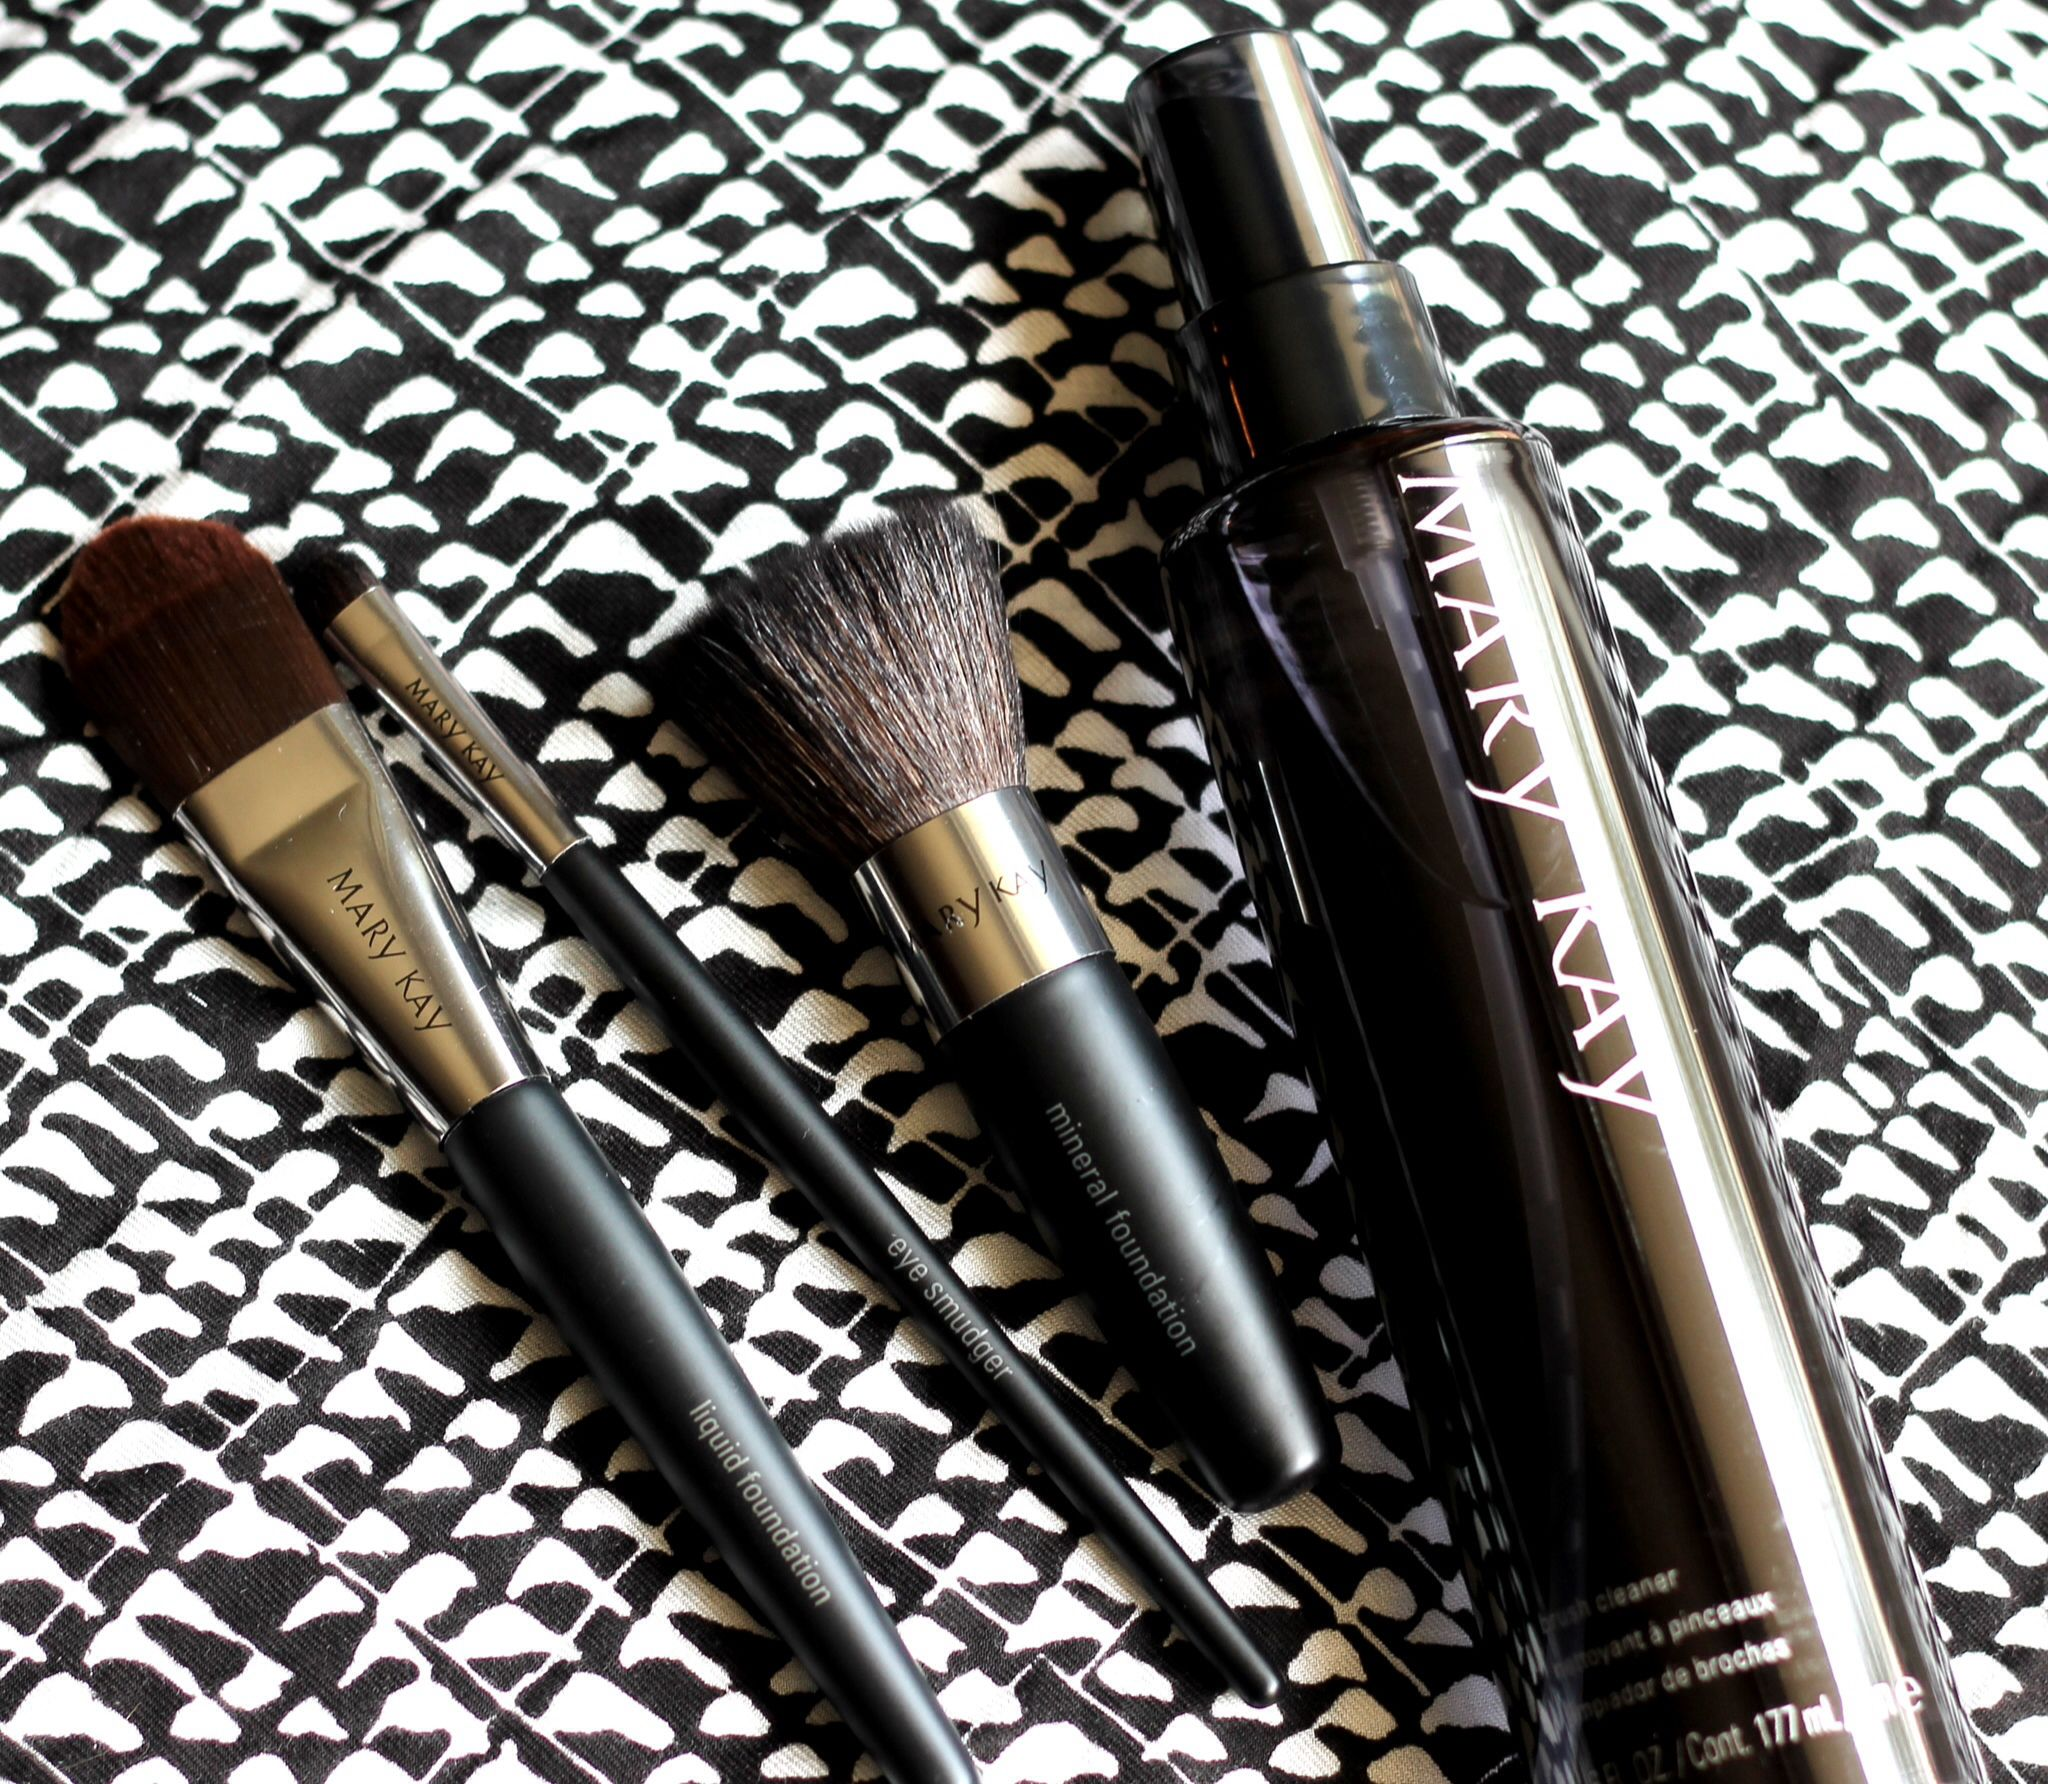 Give your brushes the care they deserve and help ensure